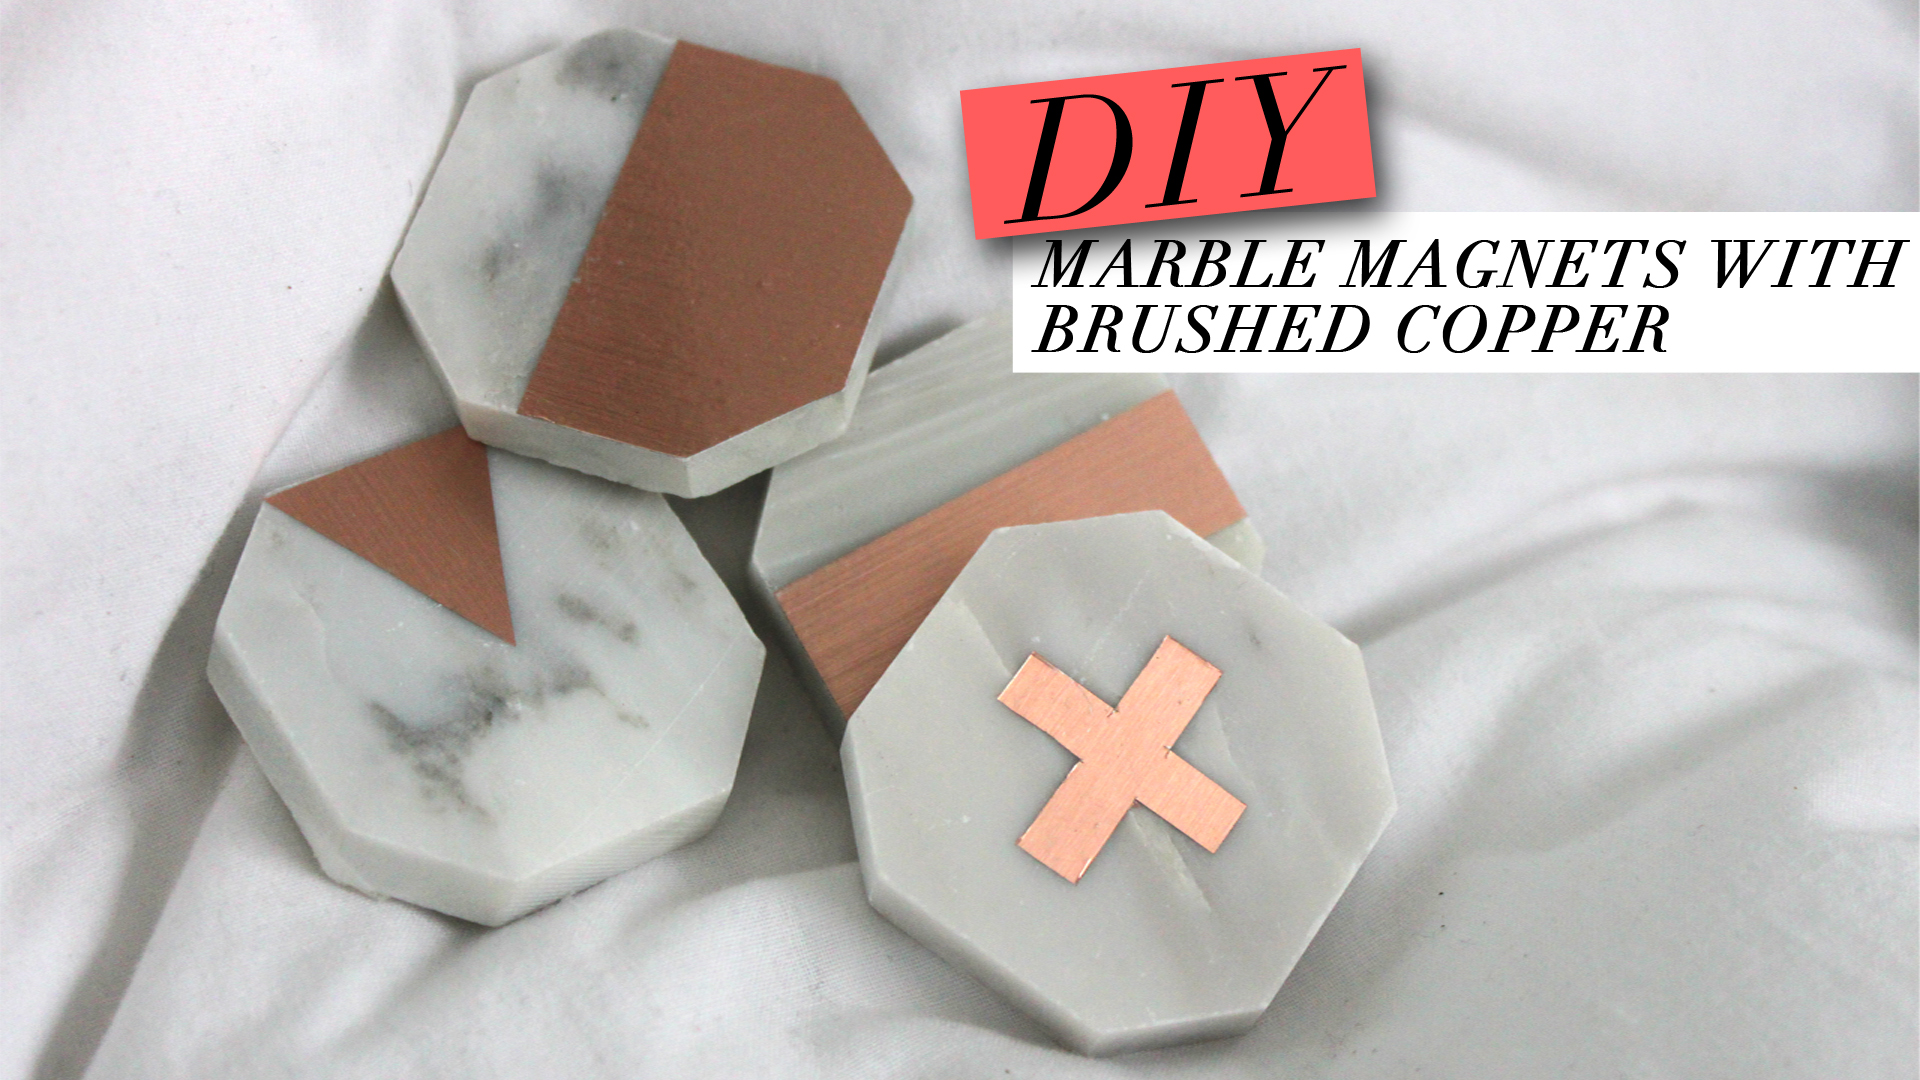 DIY LUXE MARBLE TILE WITH COPPER ACCENTS MAGNETS